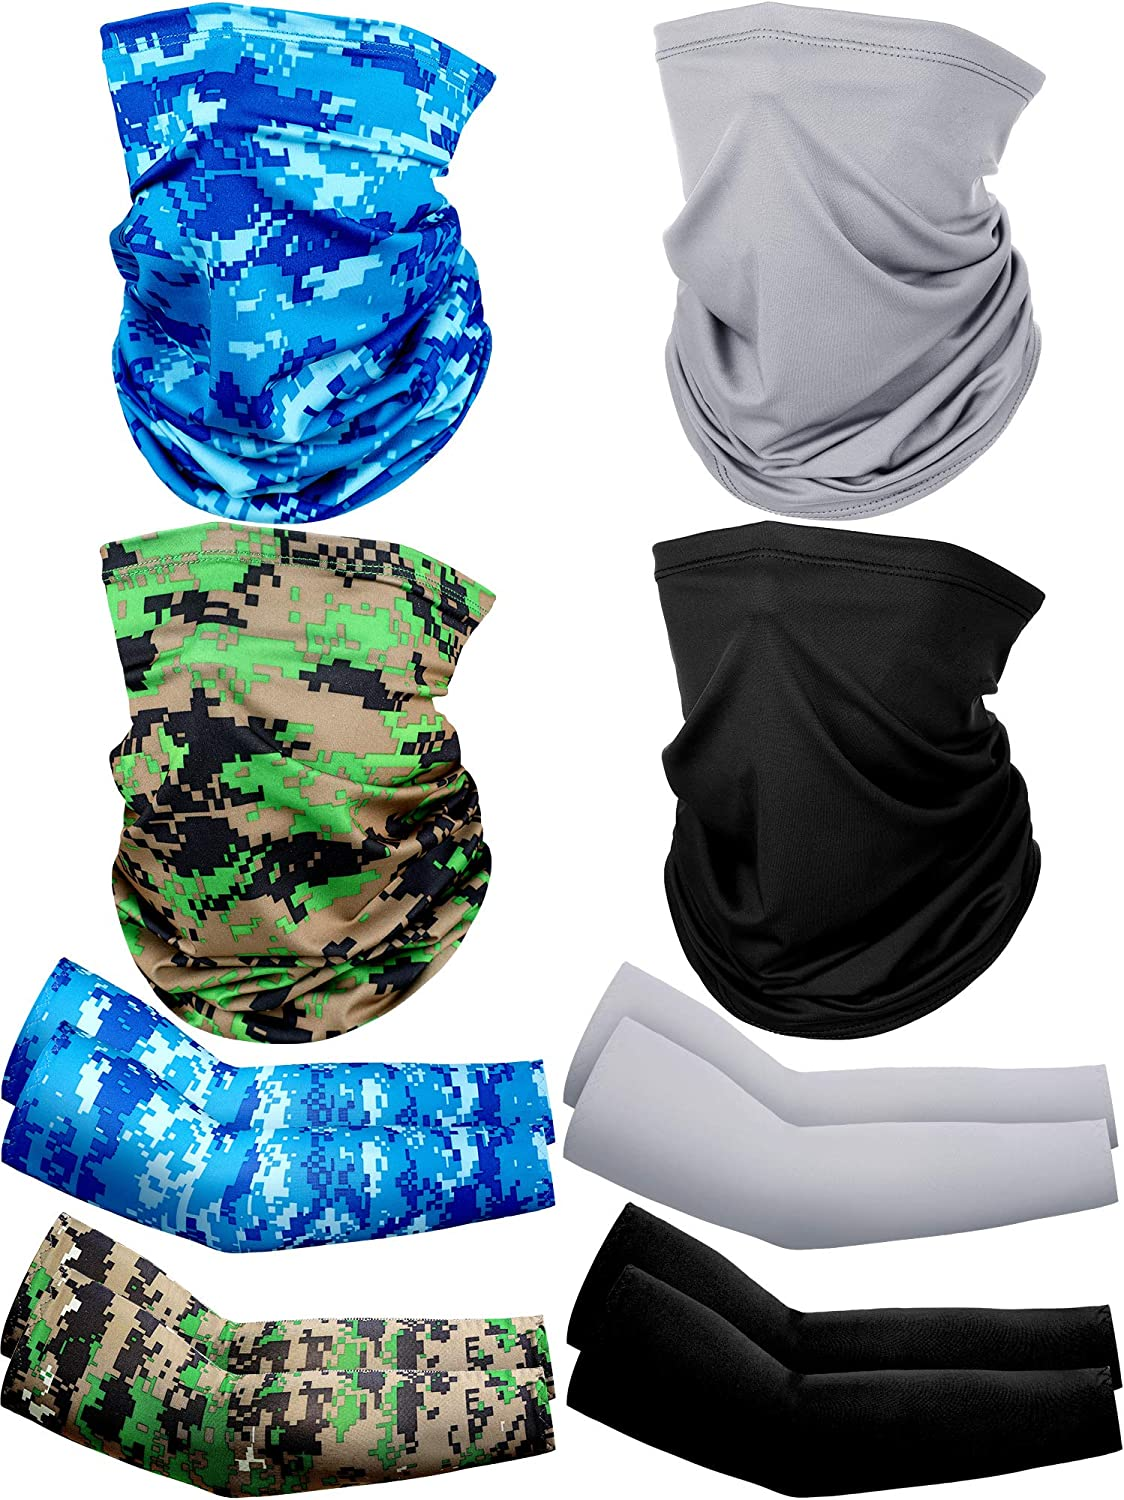 8 Pack Summer UV Protection Face Cover Neck Gaiter Scarf and Ice Silk Cooling Arm Sleeves(Black, Grey, Camouflage)